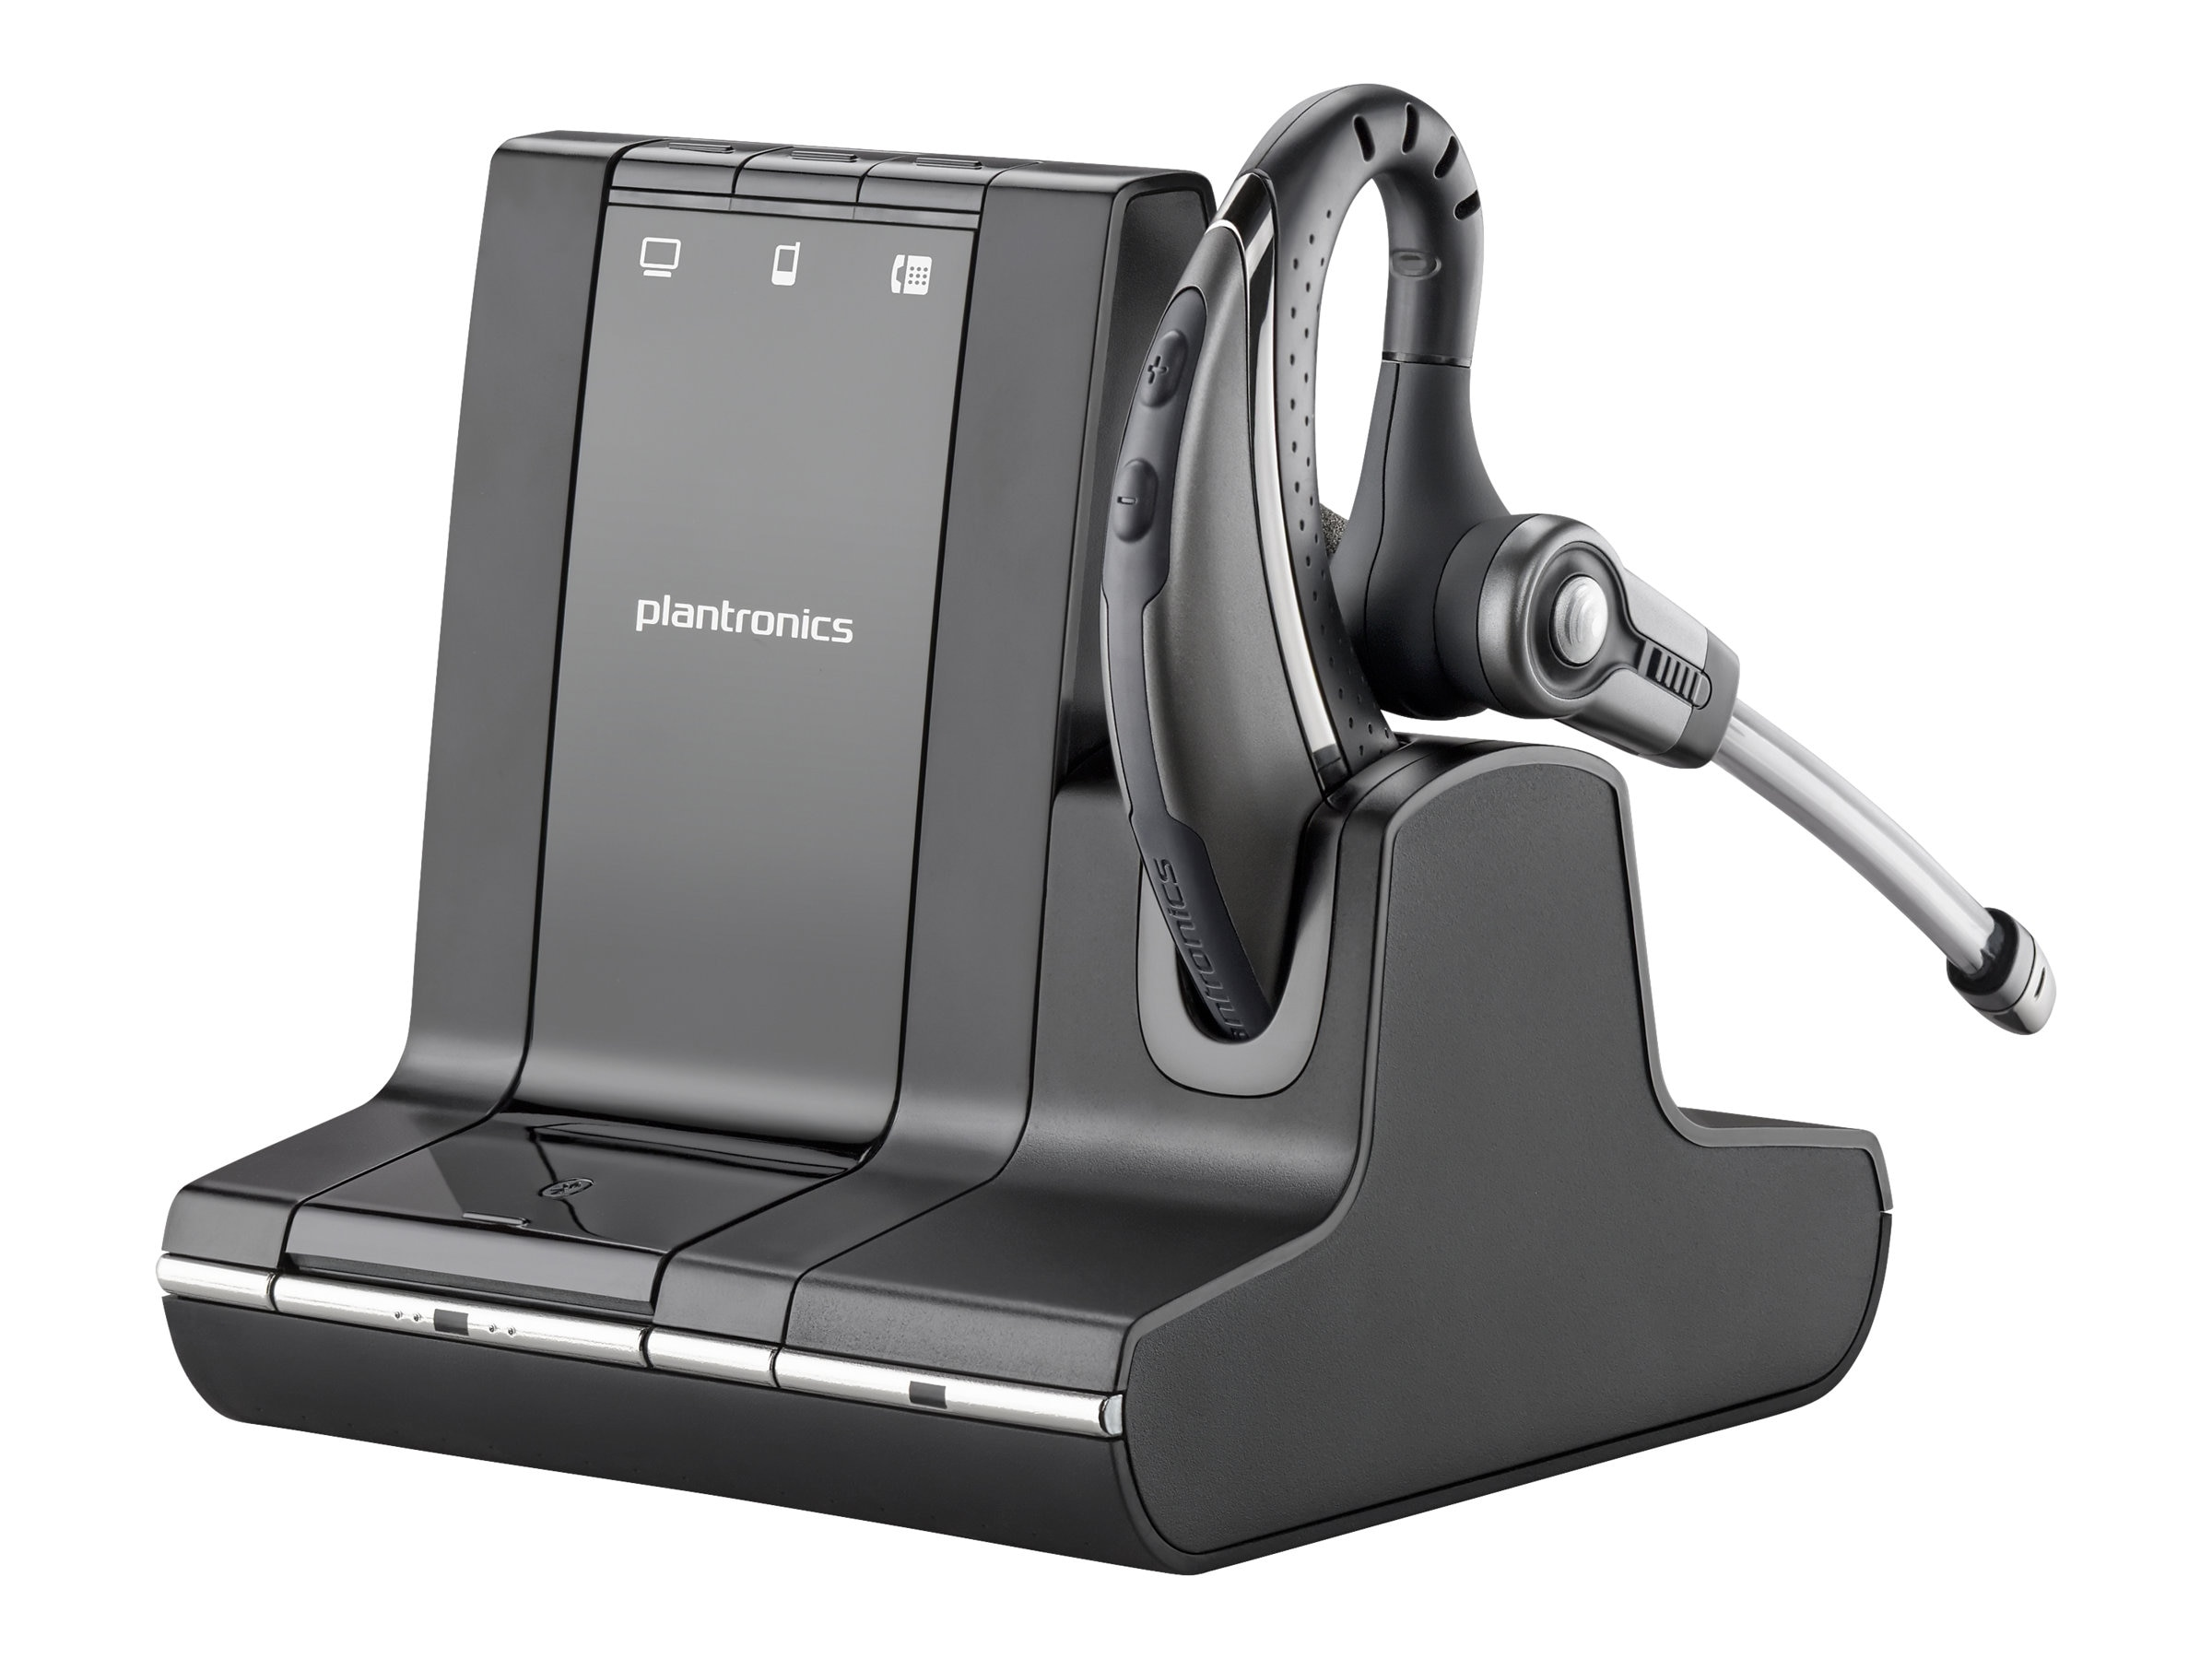 Plantronics Savi W730-M Over-the-Ear Wireless Headset System for MS, 84002-01, 13014567, Headsets (w/ microphone)